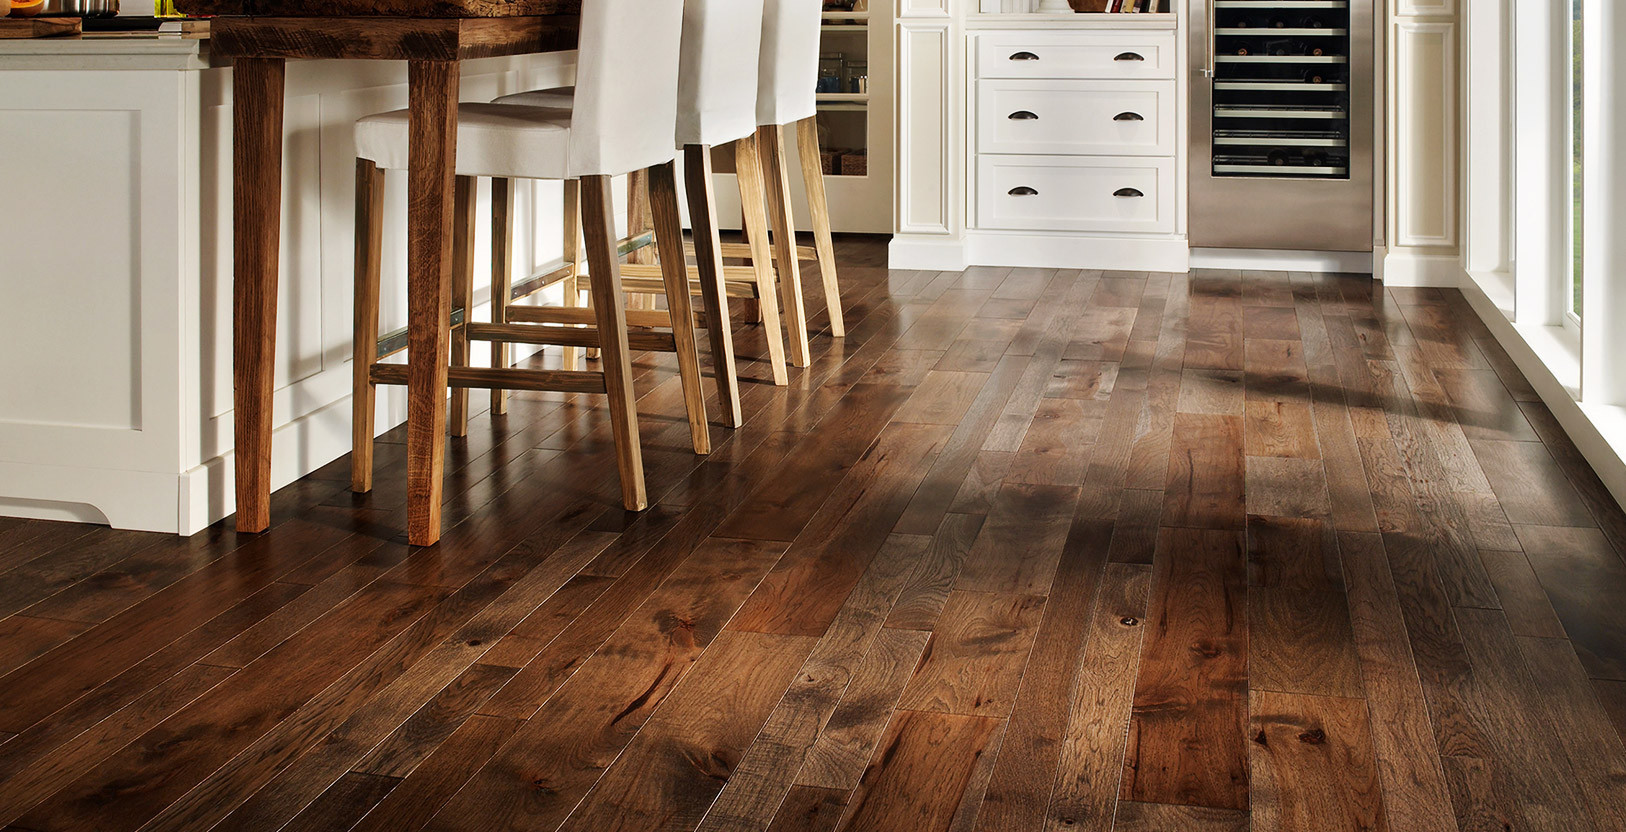 Bamboo flooring // homedit.com